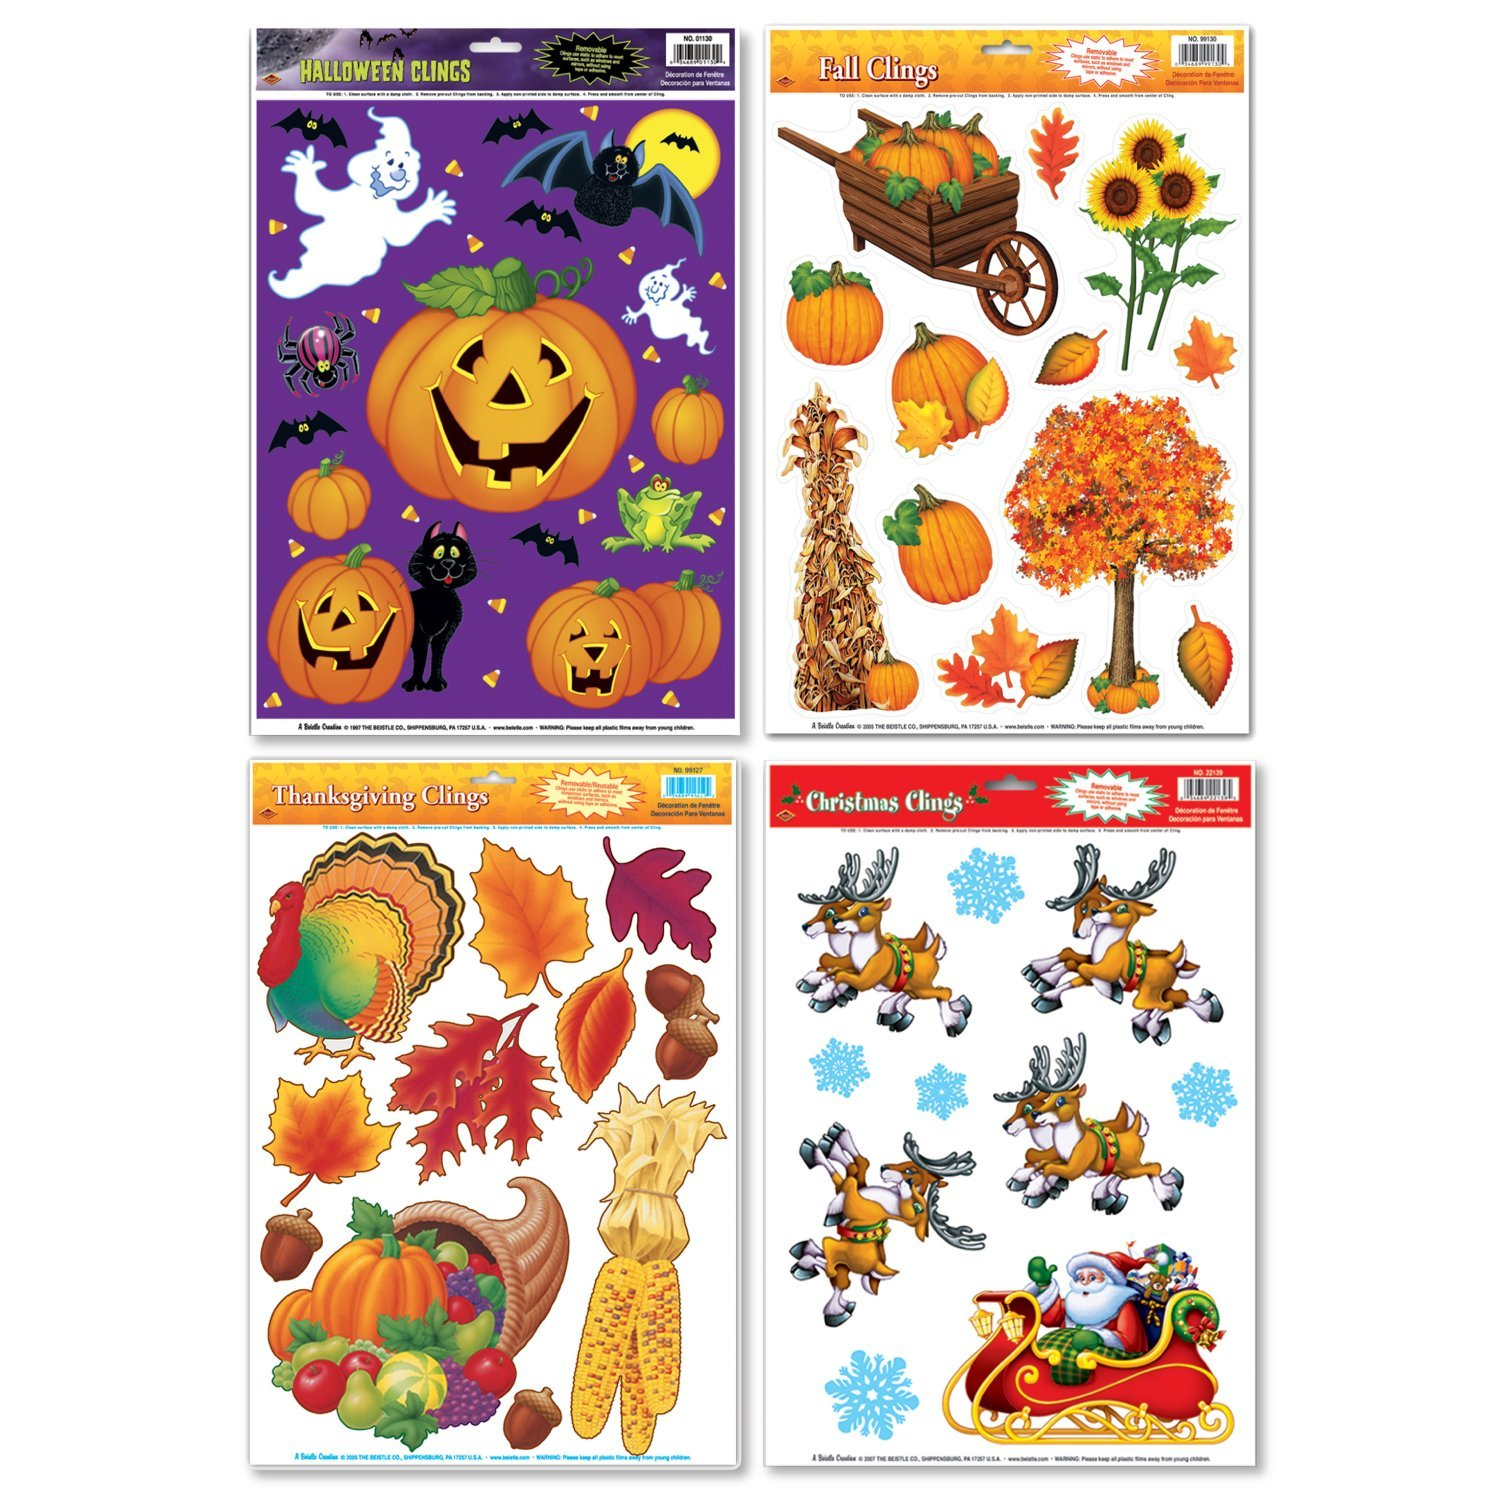 FAKKOS Design Fall/Winter Holiday Window Cling Decorations - Halloween, Thanksgiving, Christmas - 4 Large Sheet Sets